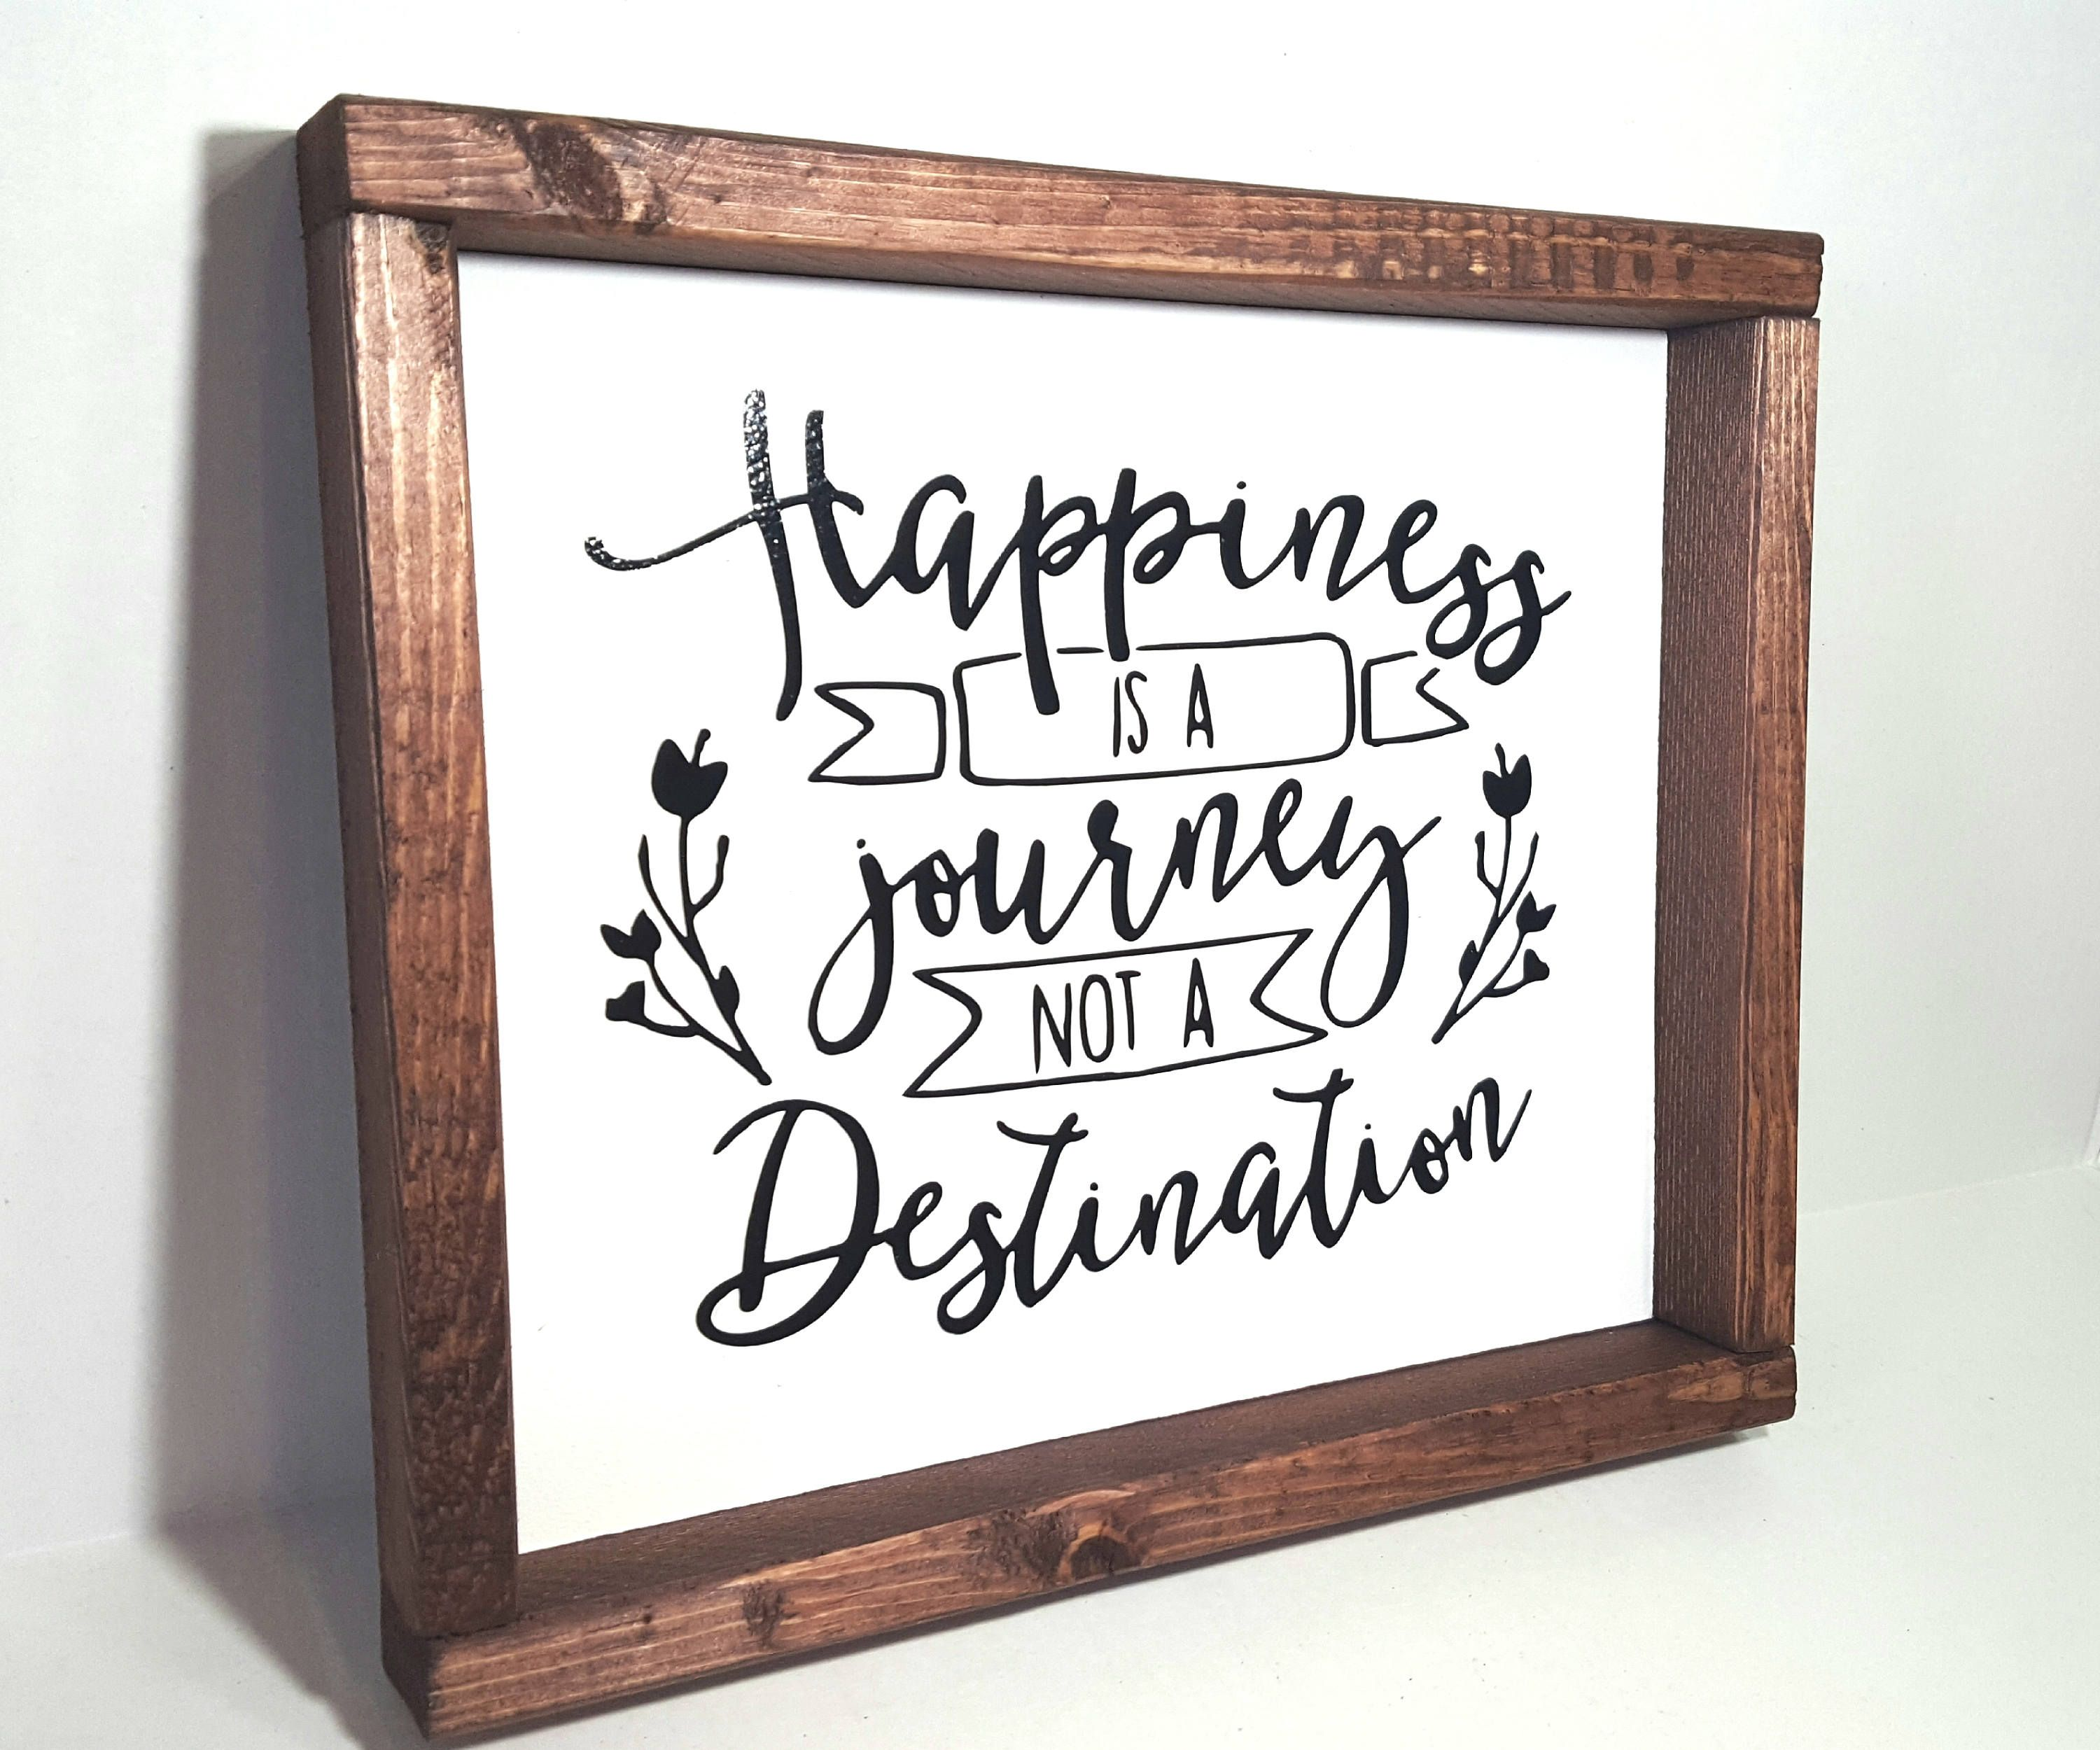 Wood Sign Framed Wood Sign Quote Sign Motivational Sign Rustic Wood Sign Happiness Wedding Sign Farmhouse S With Images Wood Frame Sign Wood Signs Rustic Wood Signs